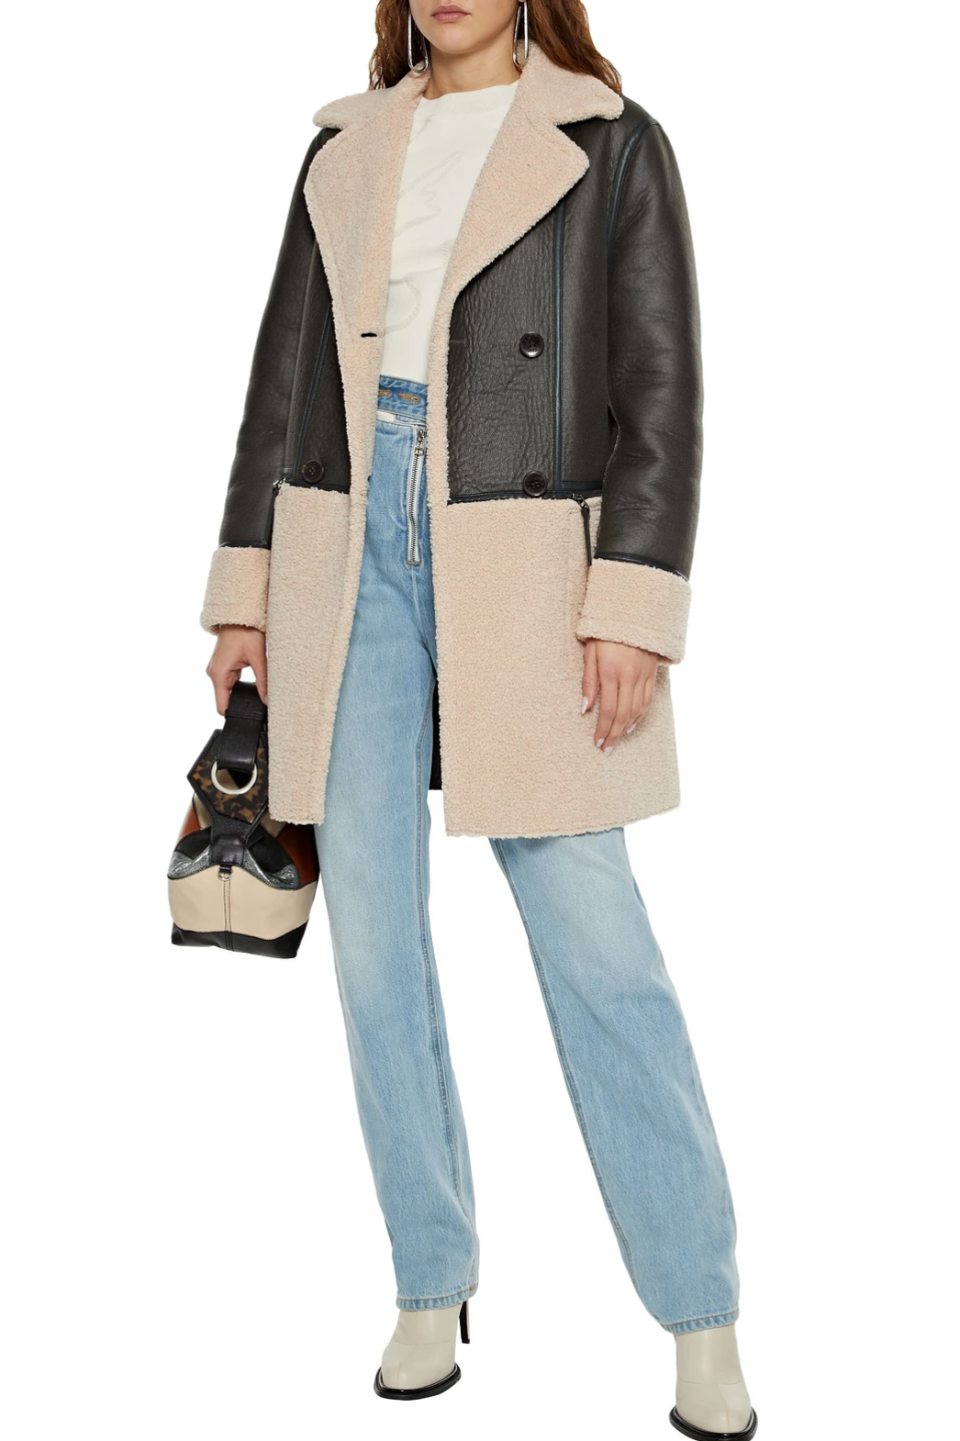 DKNY Double-Breasted Paneled Faux Shearling Coat (Photo via The Outnet)